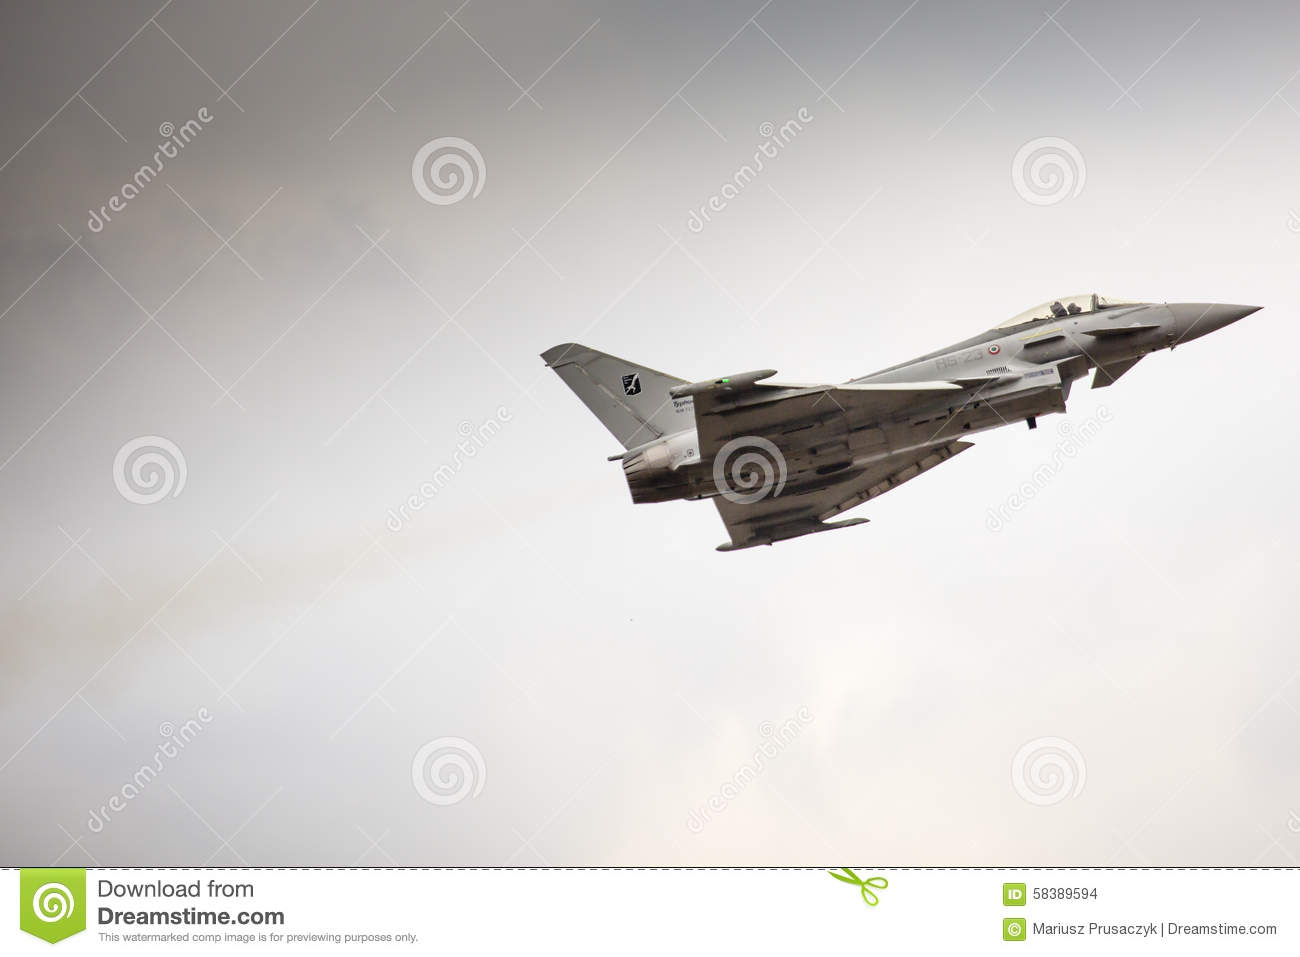 RADOM, POLAND - AUGUST 23: Italian EFA-2000 Eurofighter Typhoon